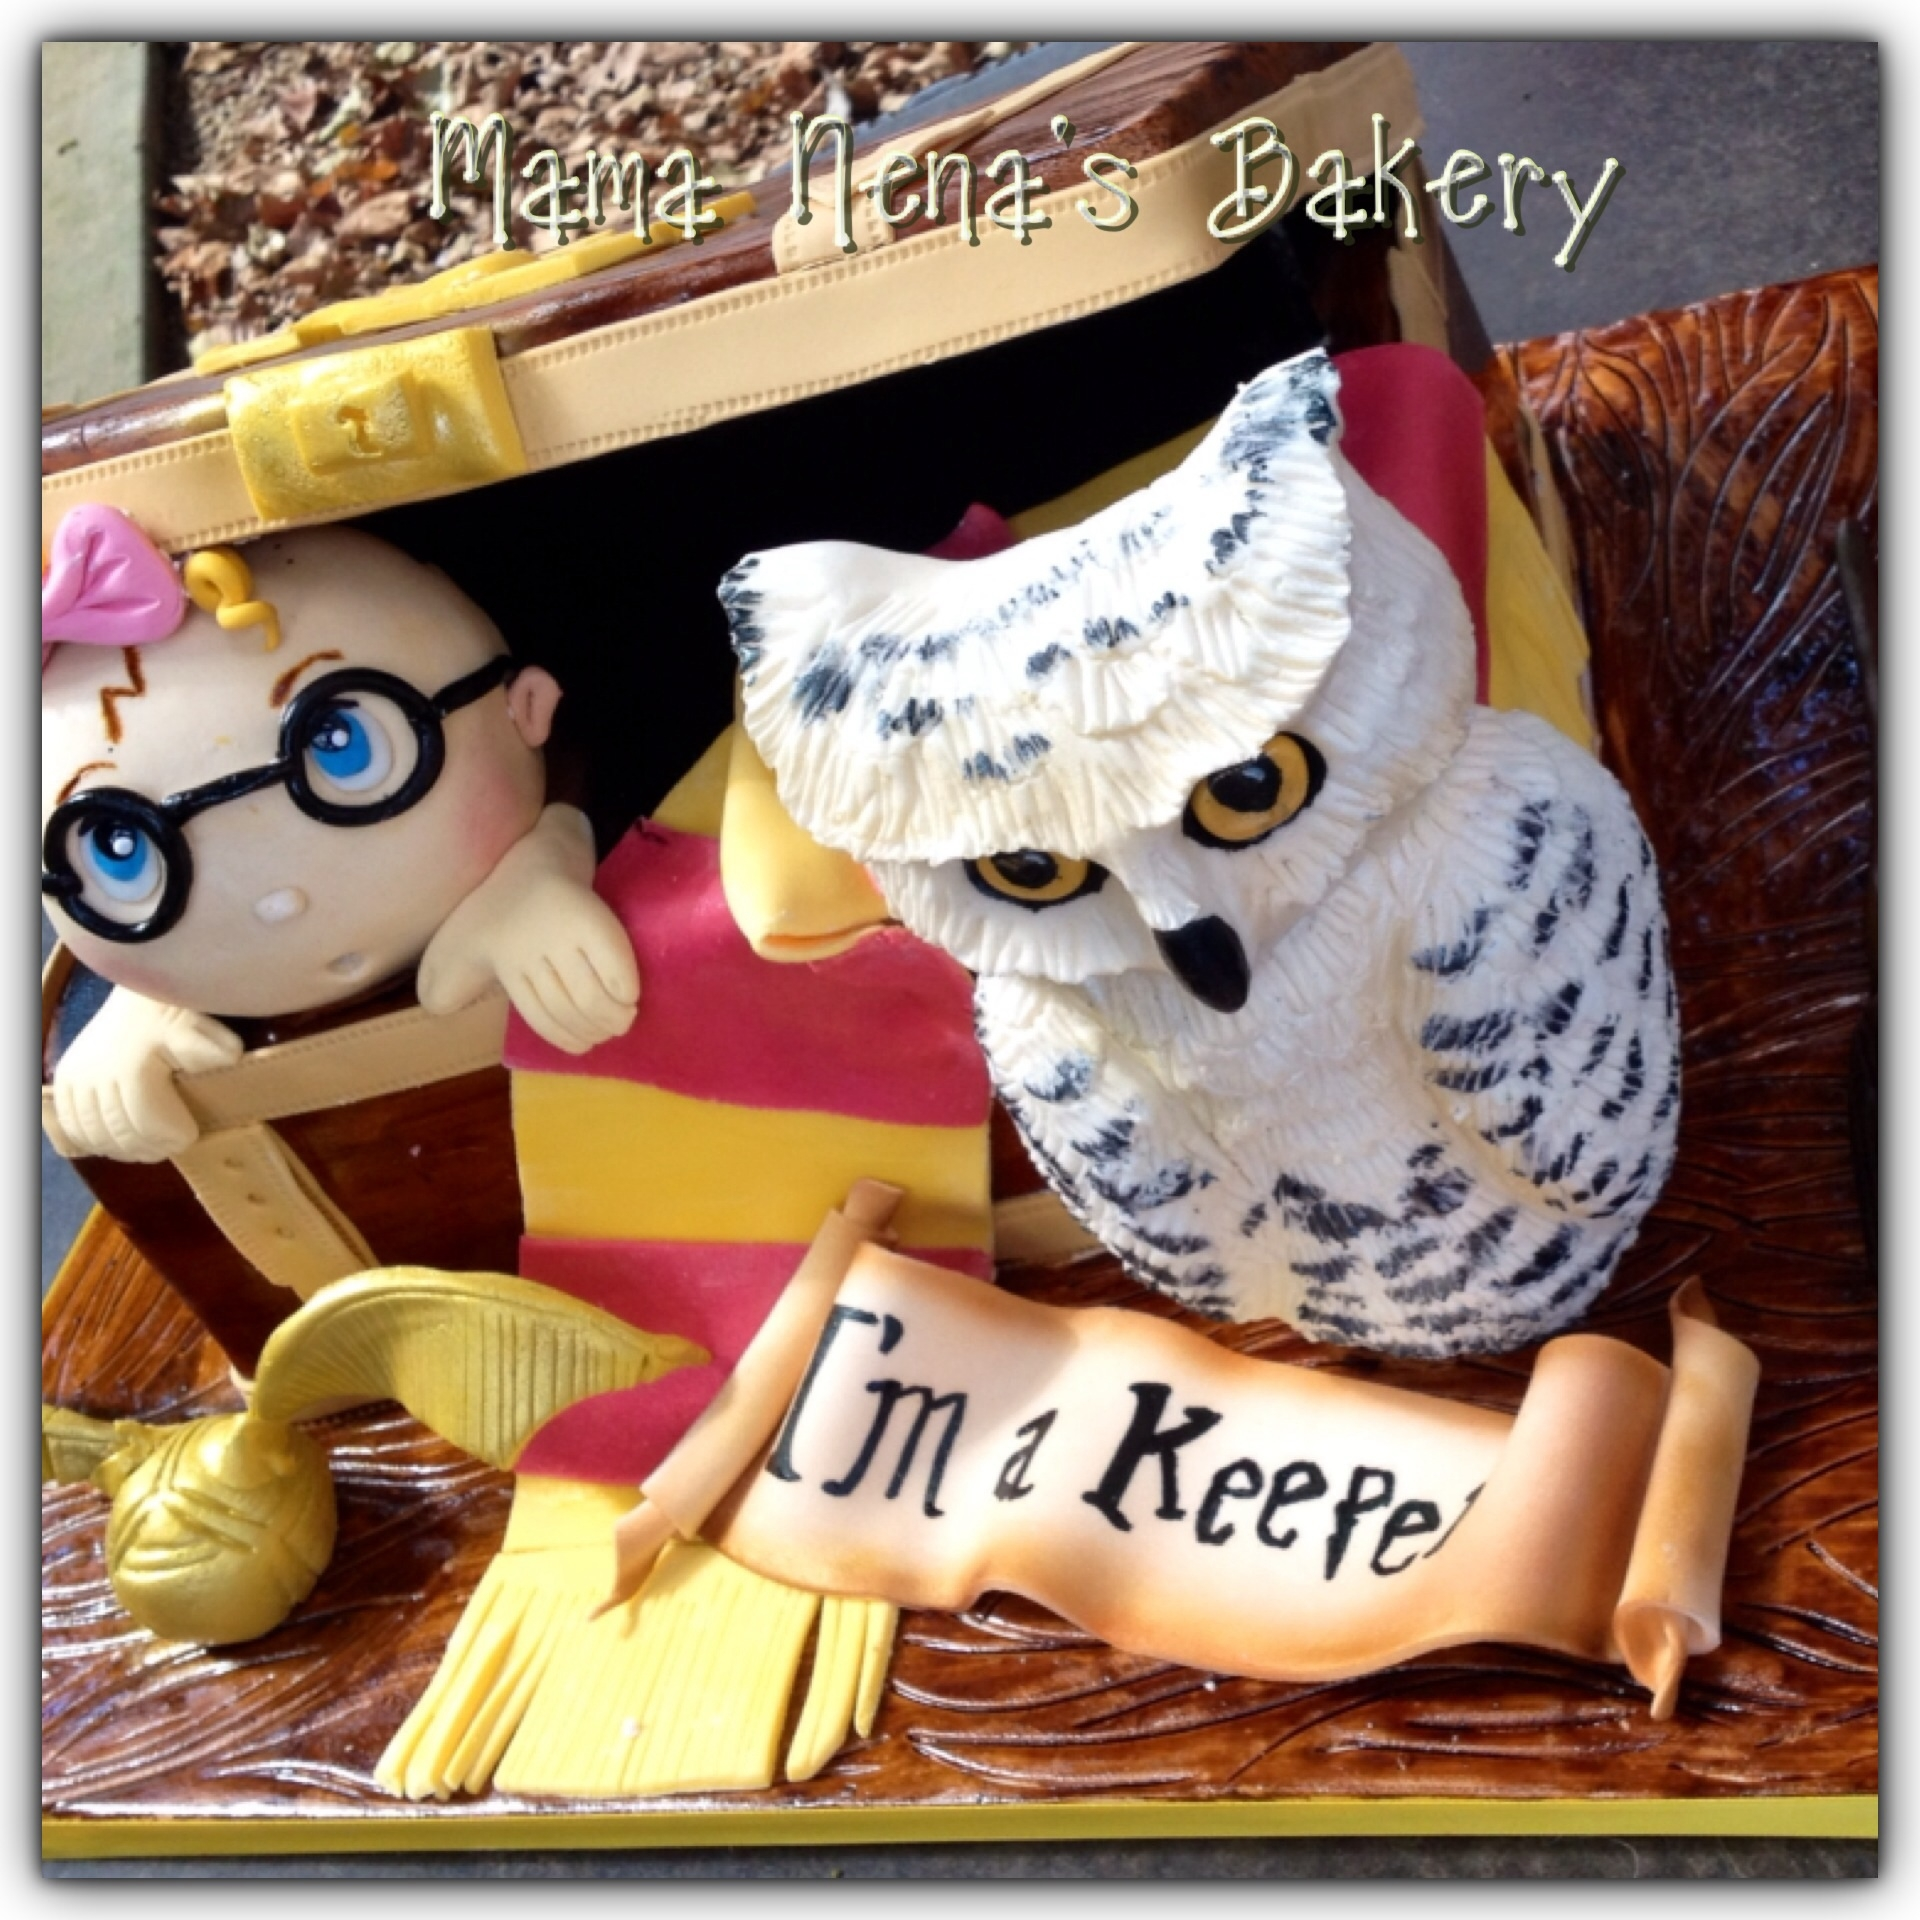 harry potter trunk baby shower cakeall is edible